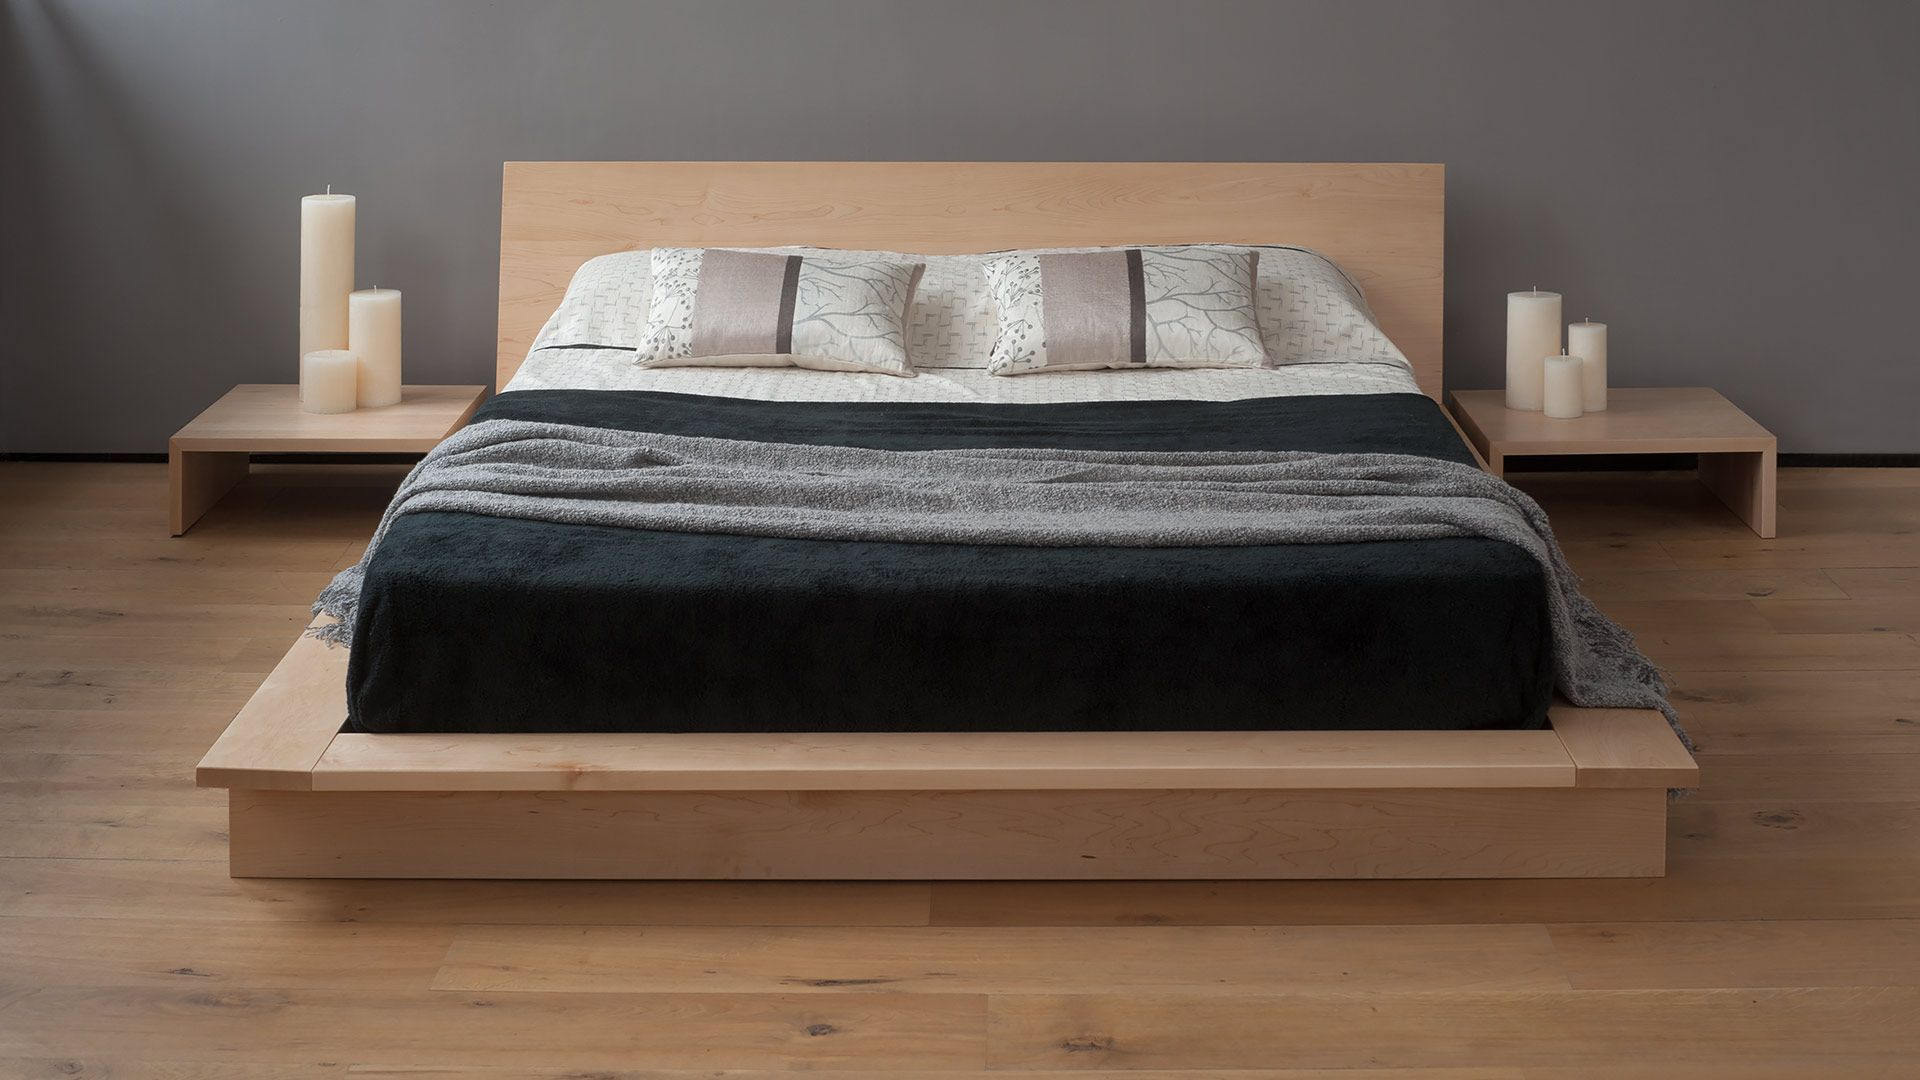 Oregon is a low, solid wood, platform bed, with an ultra